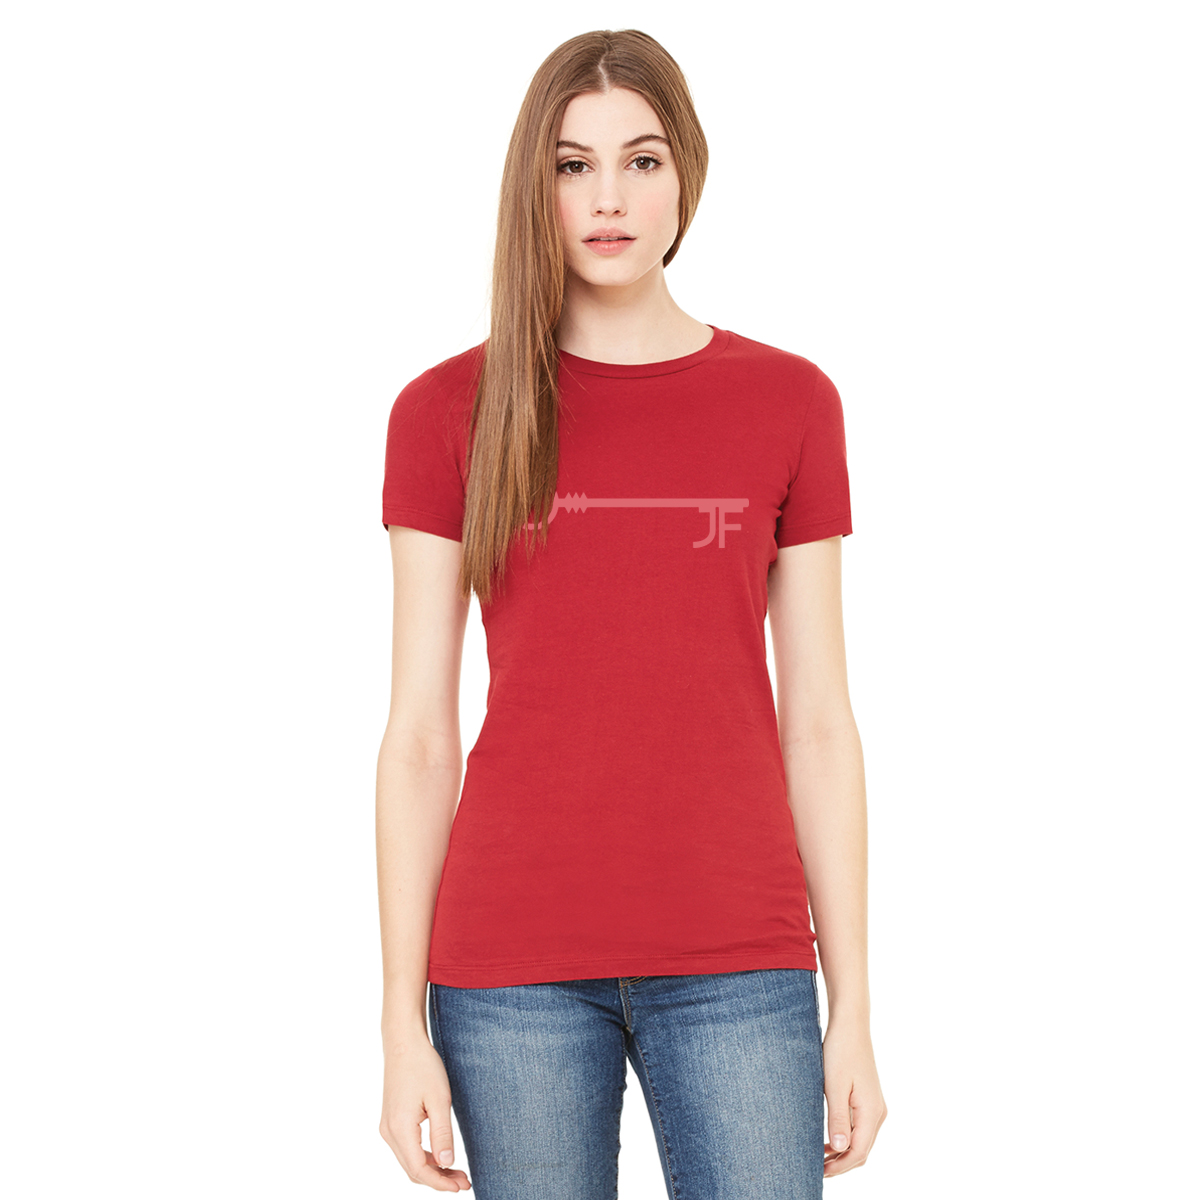 JF Key Red Women's Tee